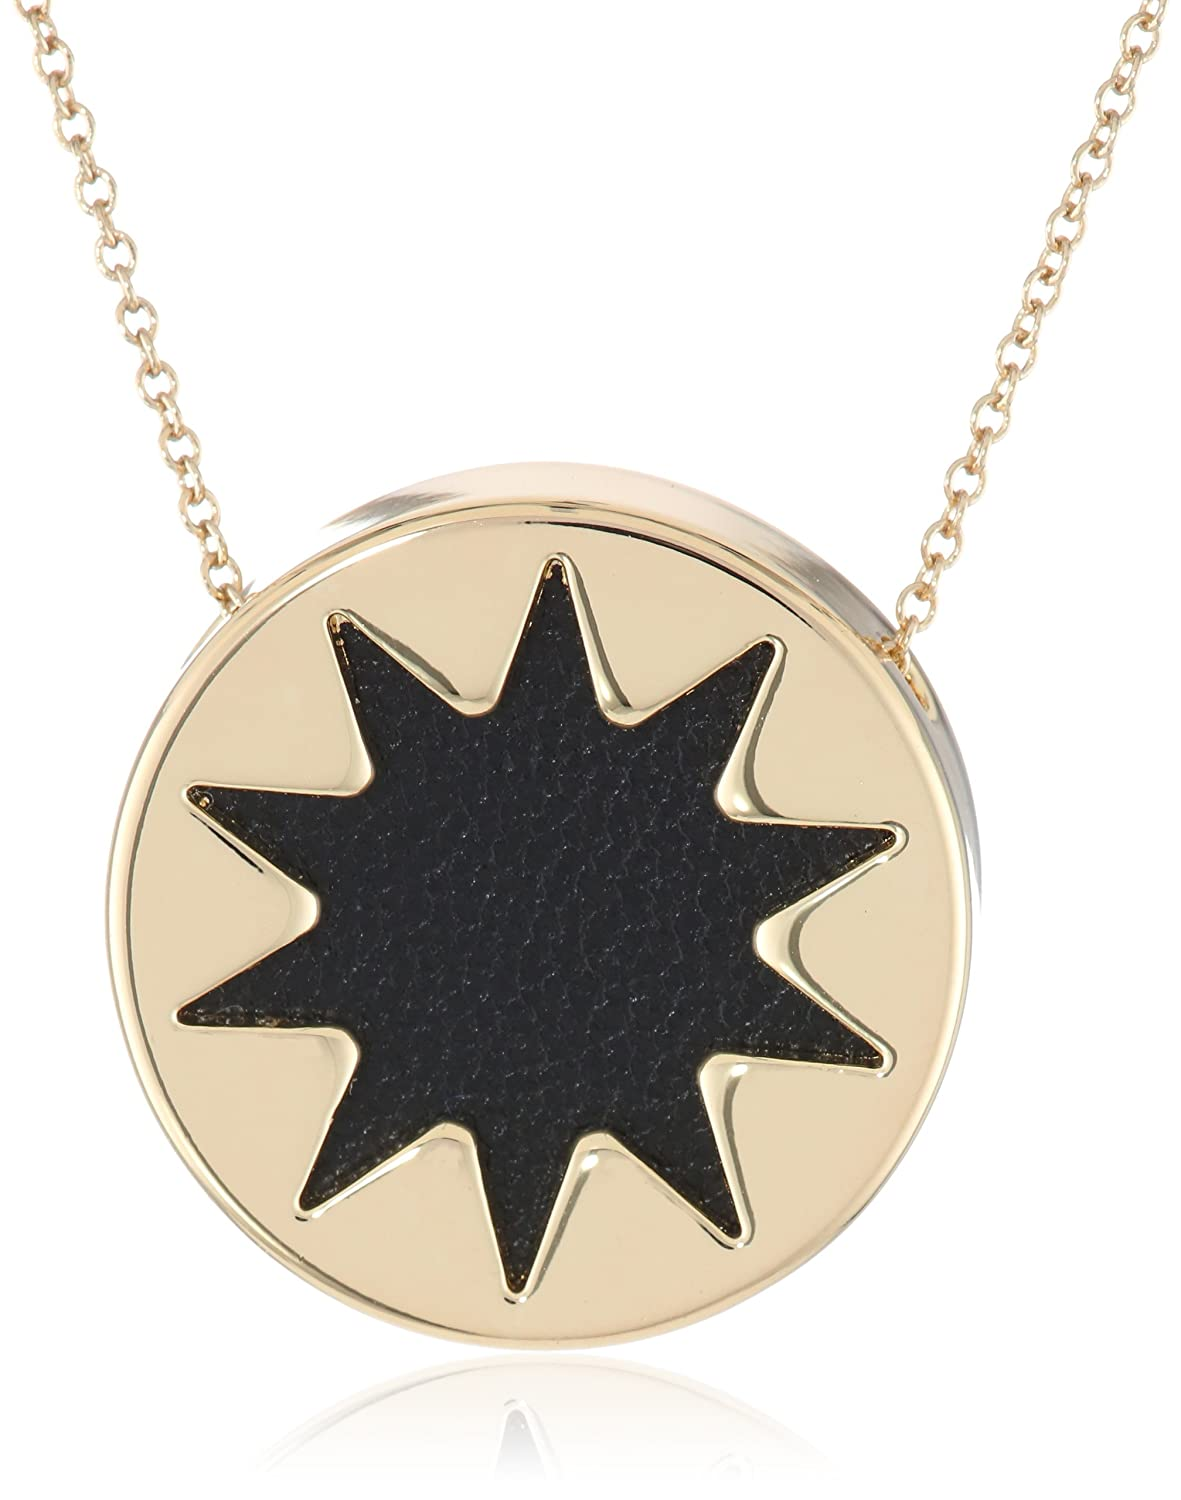 sunburst necklace small in pendant harlow products of house hoh silvertone mint